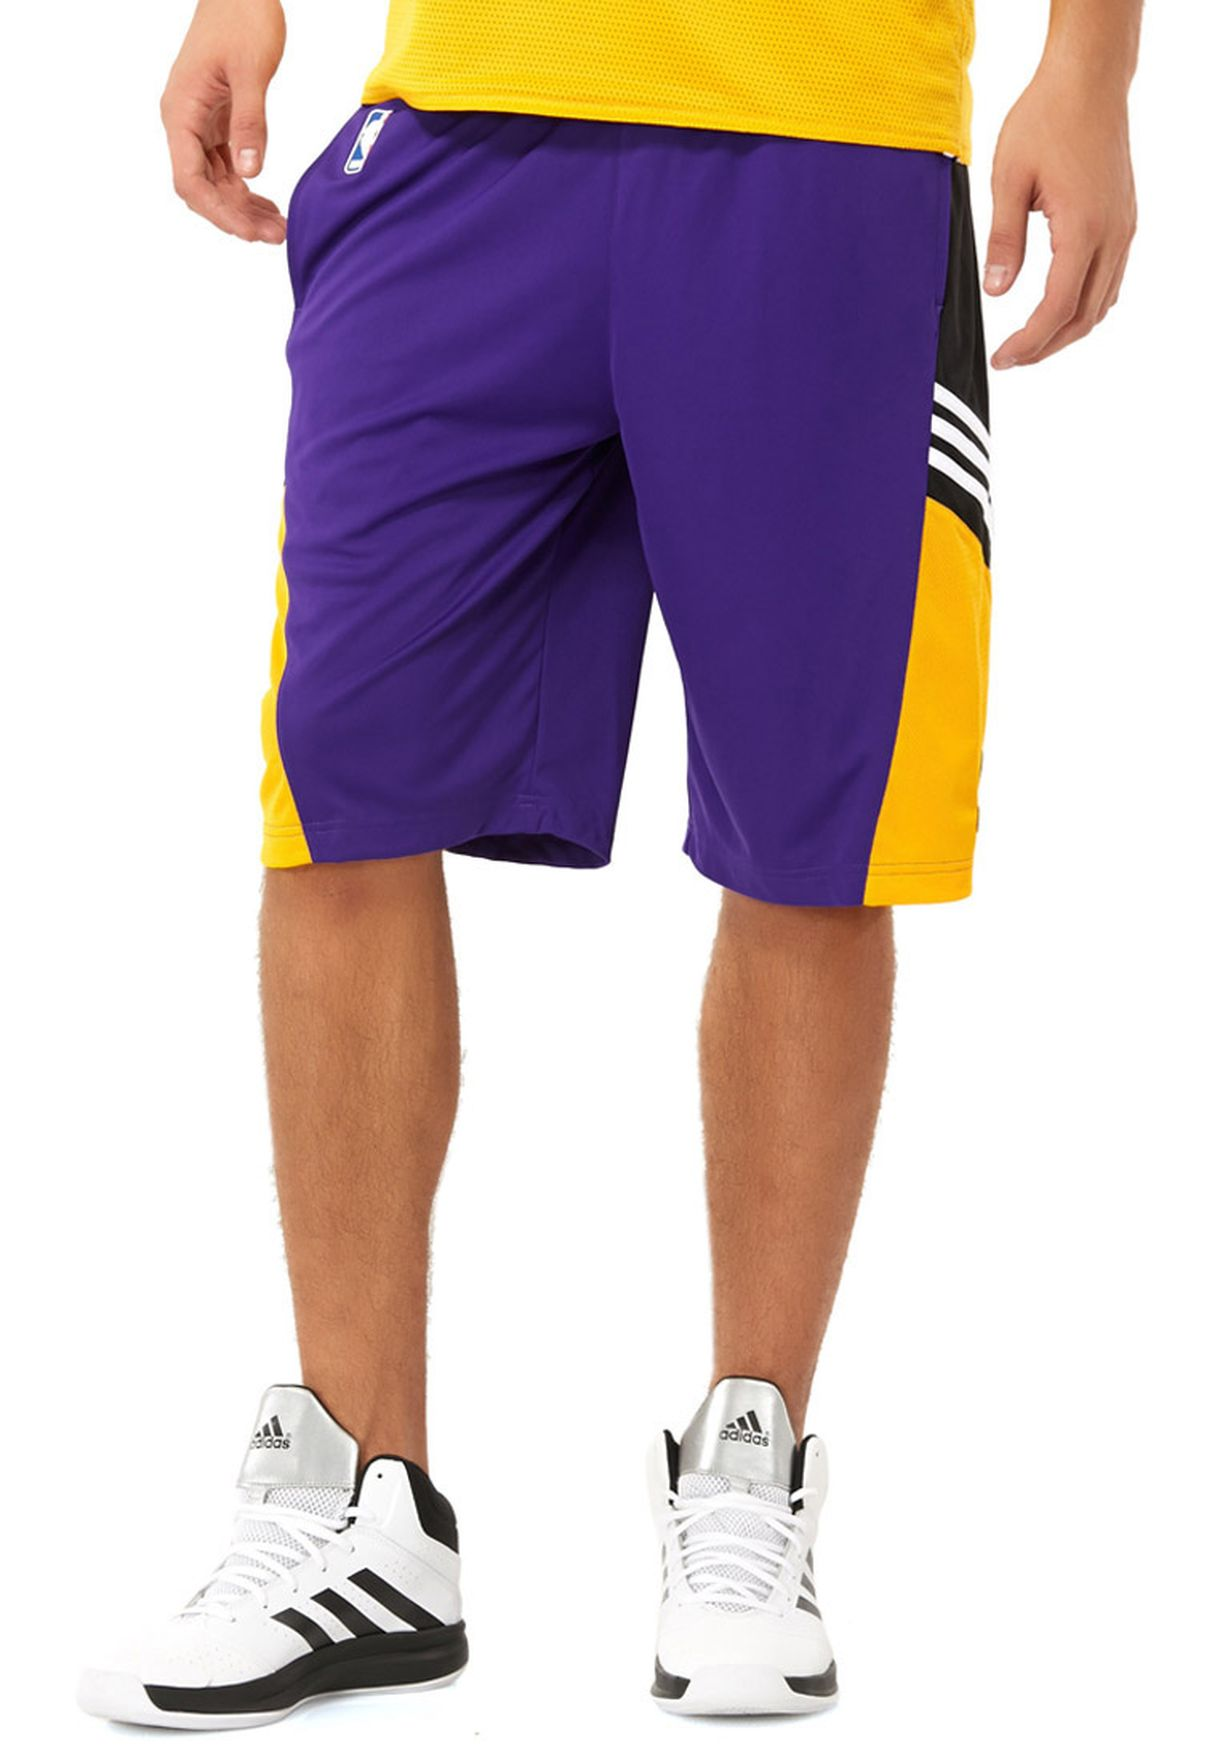 5c69367d6 Shop adidas purple Lakers Winter Shorts F87749 for Men in Bahrain ...